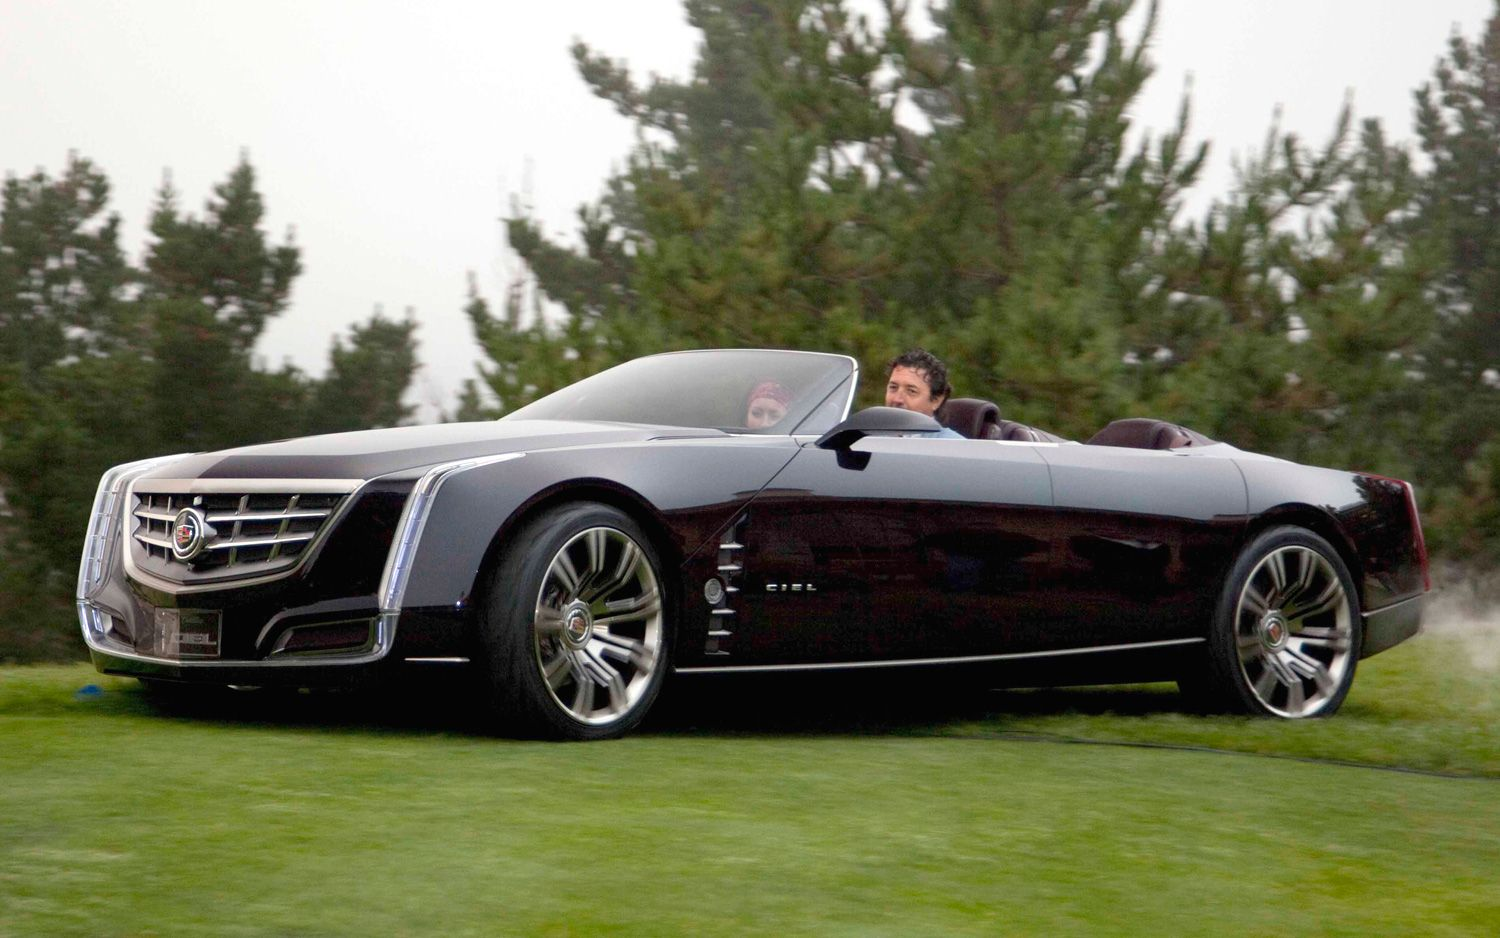 Cadillac Ciel Release Date >> Inside The Cadillac Ciel A Vision We Hope Cadillac Executes Do